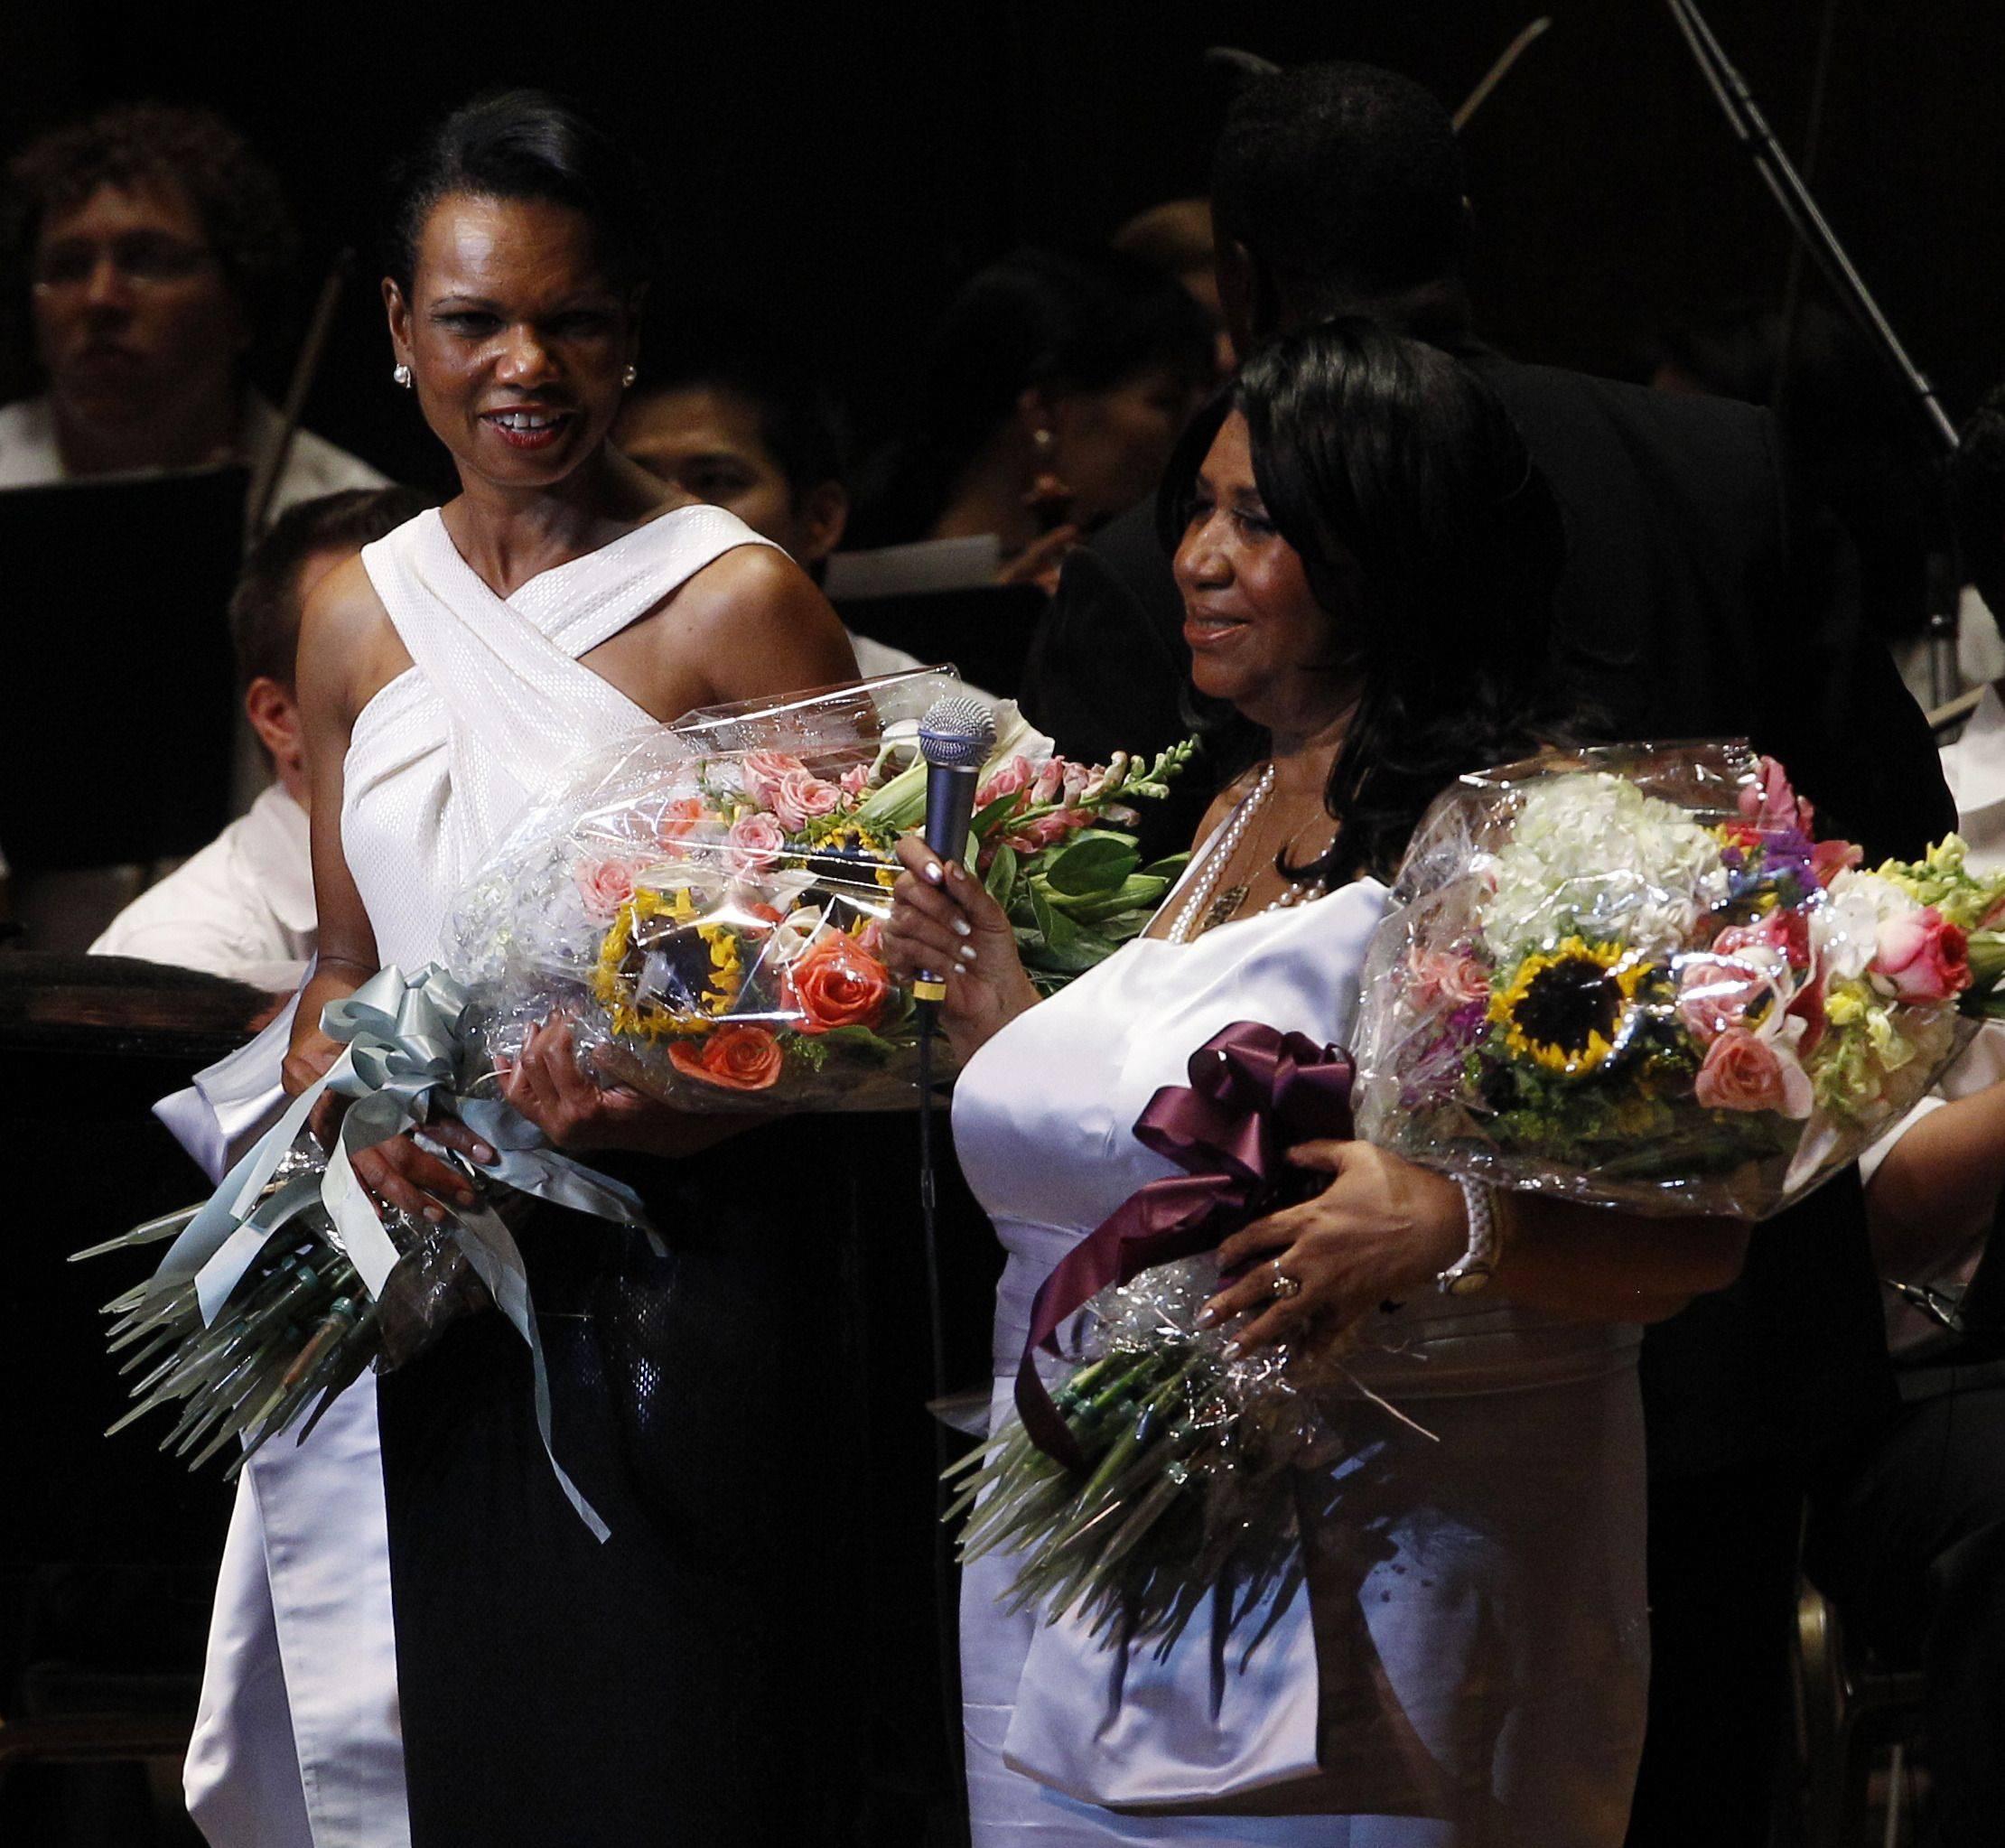 Former U.S. Secretary of State Condoleezza Rice and Aretha Franklin pose after they performed their first song together at The Mann Center for the Performing Arts in Philadelphia, Tuesday, July 27, 2010.